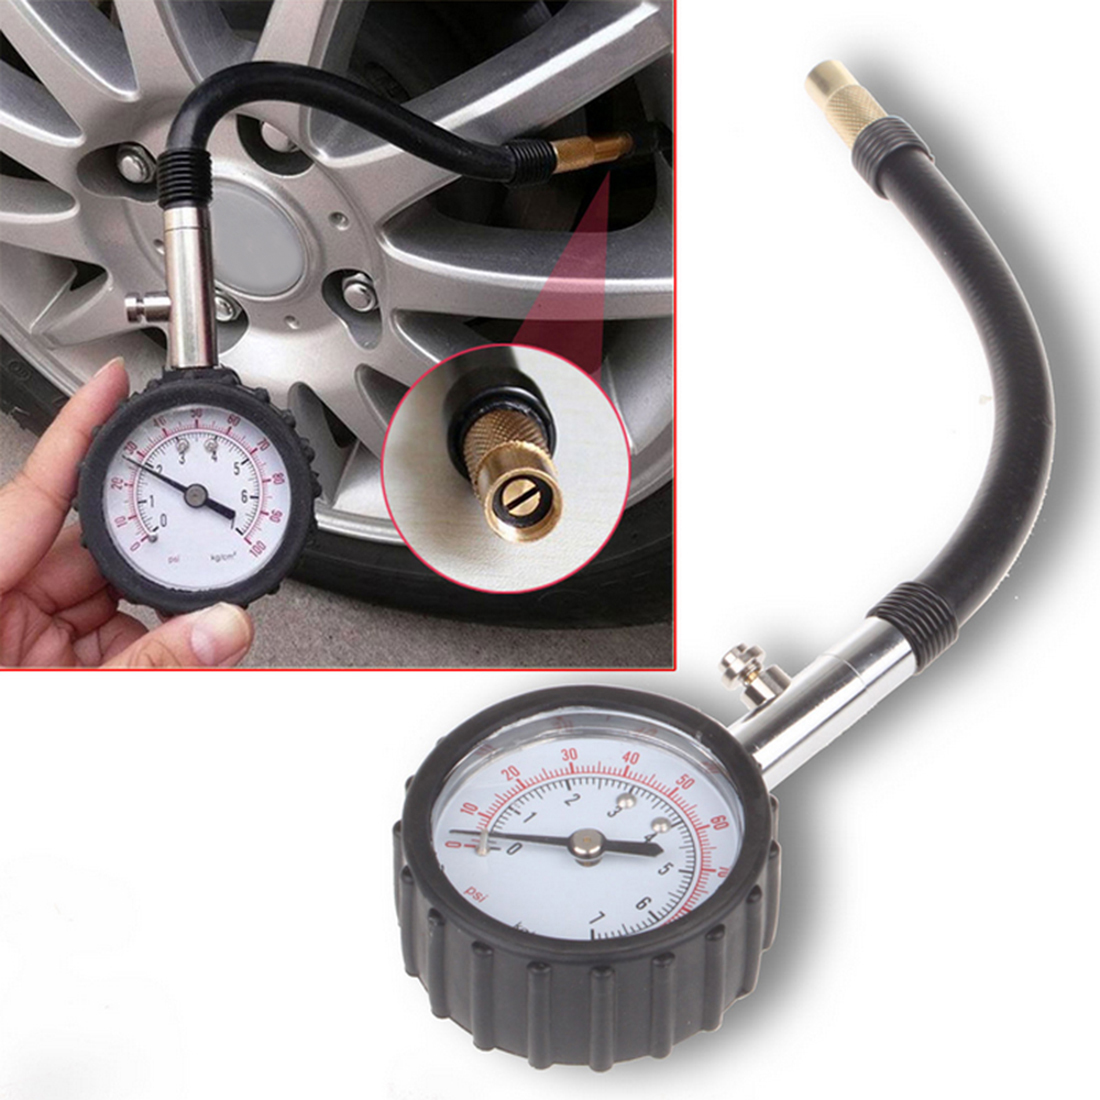 1pcs New Long Tube Auto Car Bike Motor Tyre Air Pressure Gauge Meter Tire Pressure Gauge Meter Vehicle Tester Monitoring System все цены